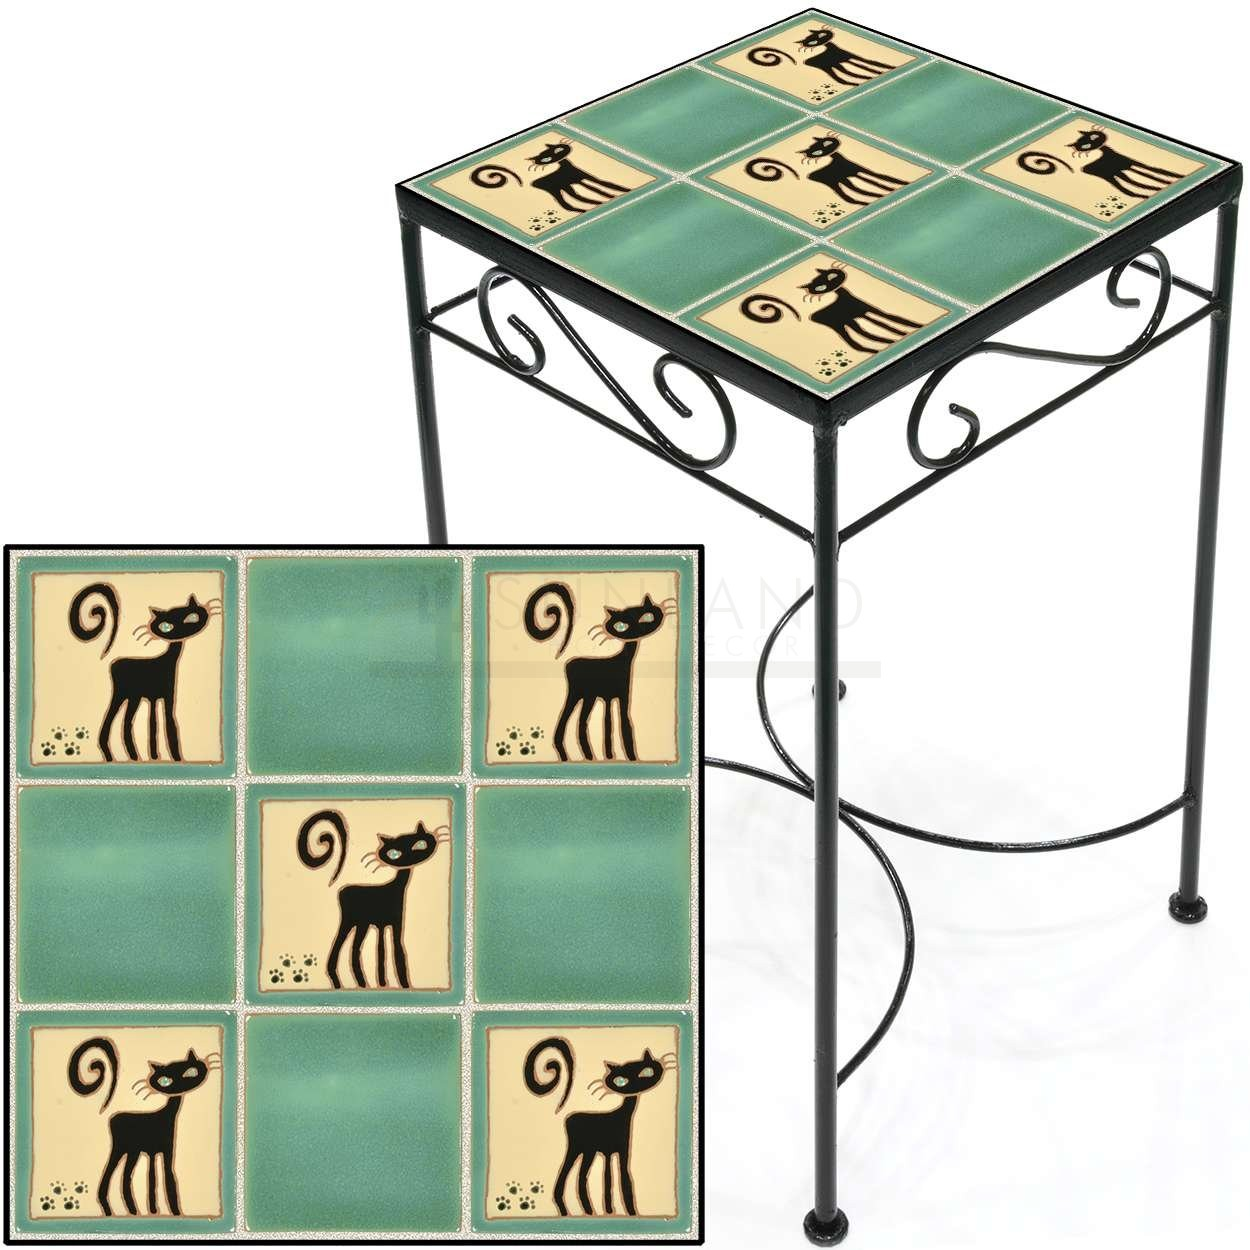 tile accent table black cats jade tall metal save square and granite top end tables iron wall clock weber side furniture brands room essentials hairpin walnut pine nightstands